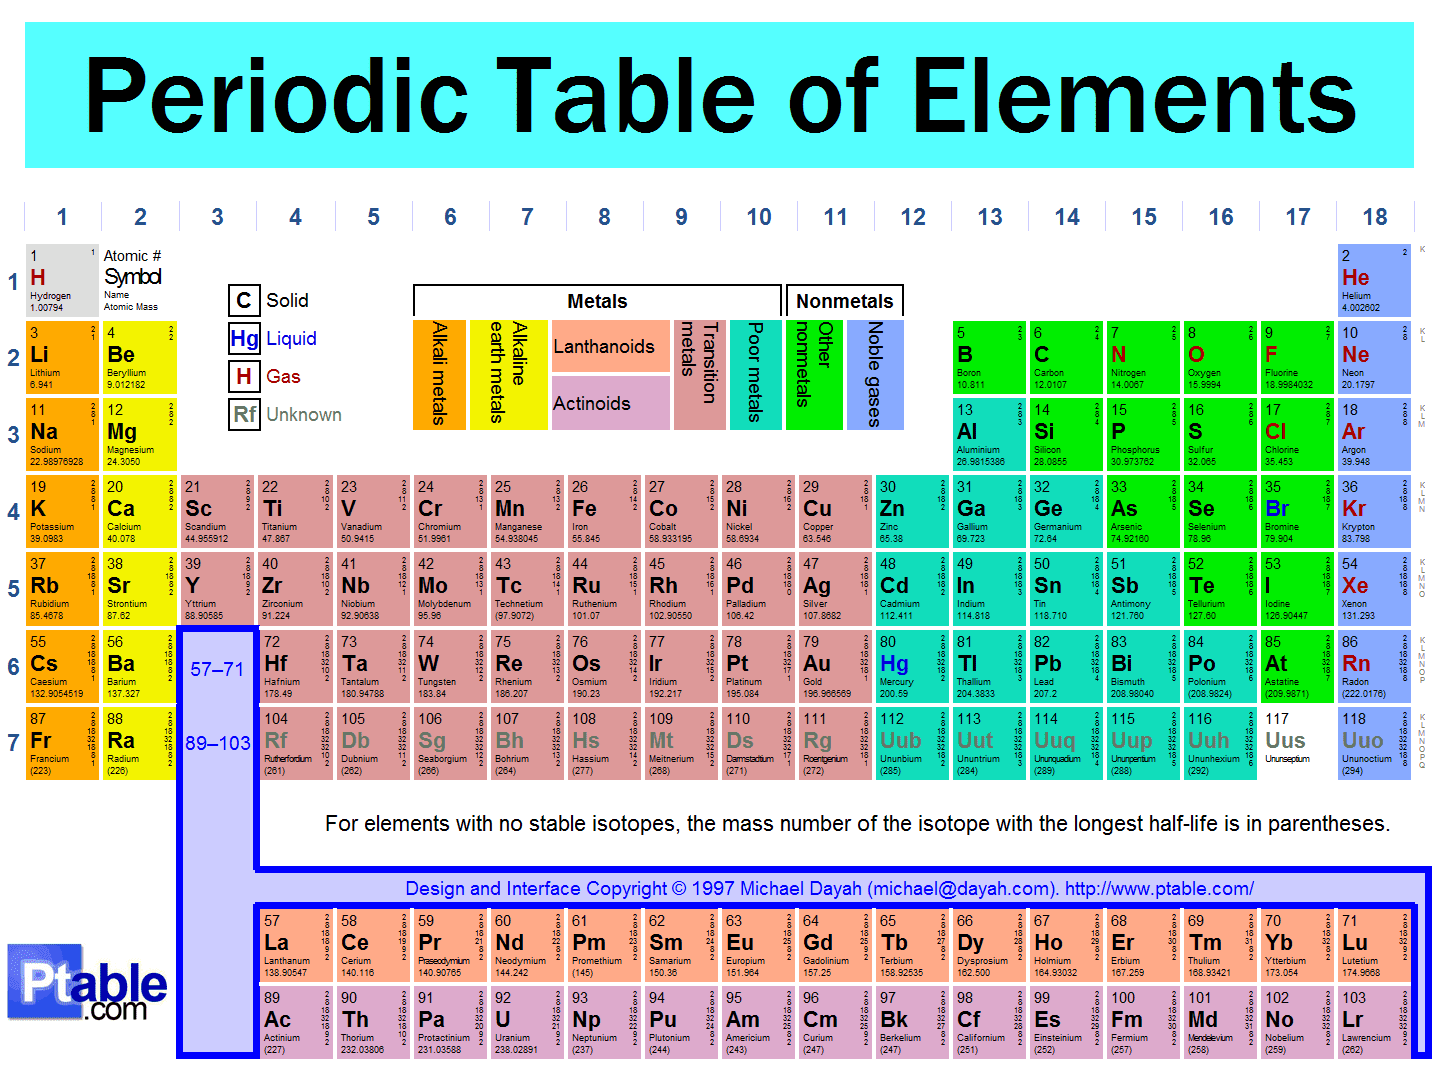 The periodic table chemistry highly insulating and electronegative except for hydrogen which has a comparatively low electronegativity level because of its unique atomic structure urtaz Gallery